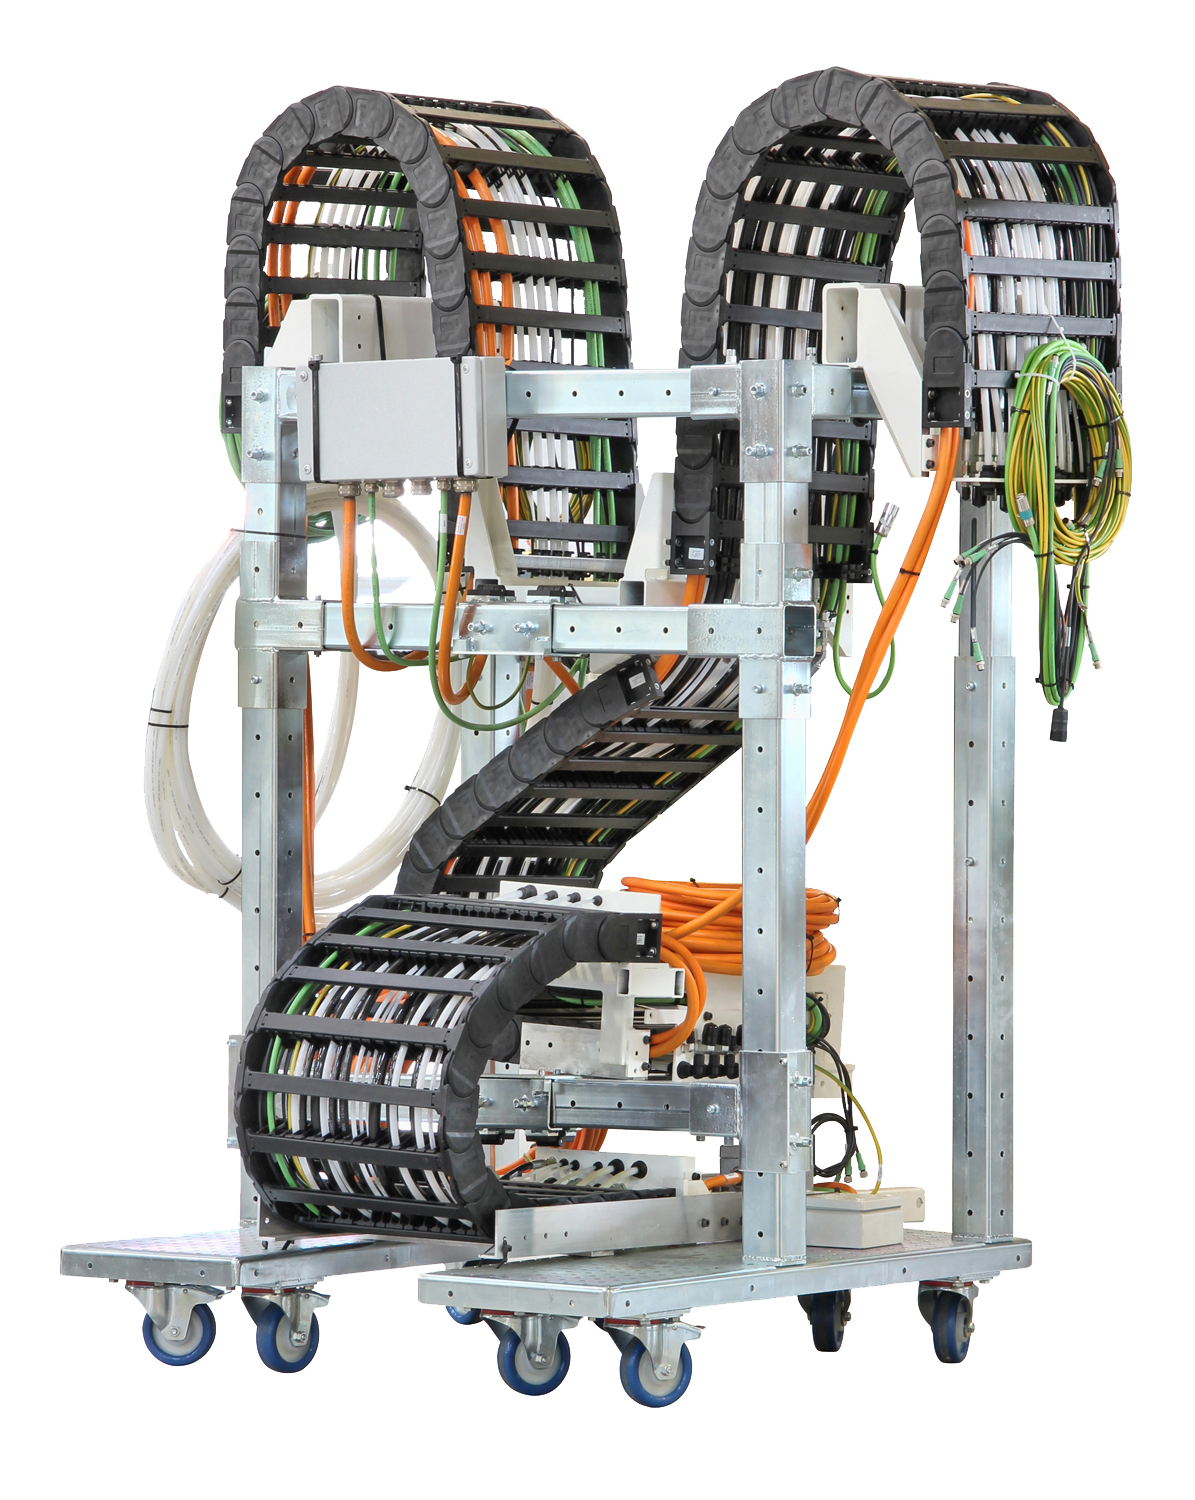 FAT0313_13_readychain_rack.png